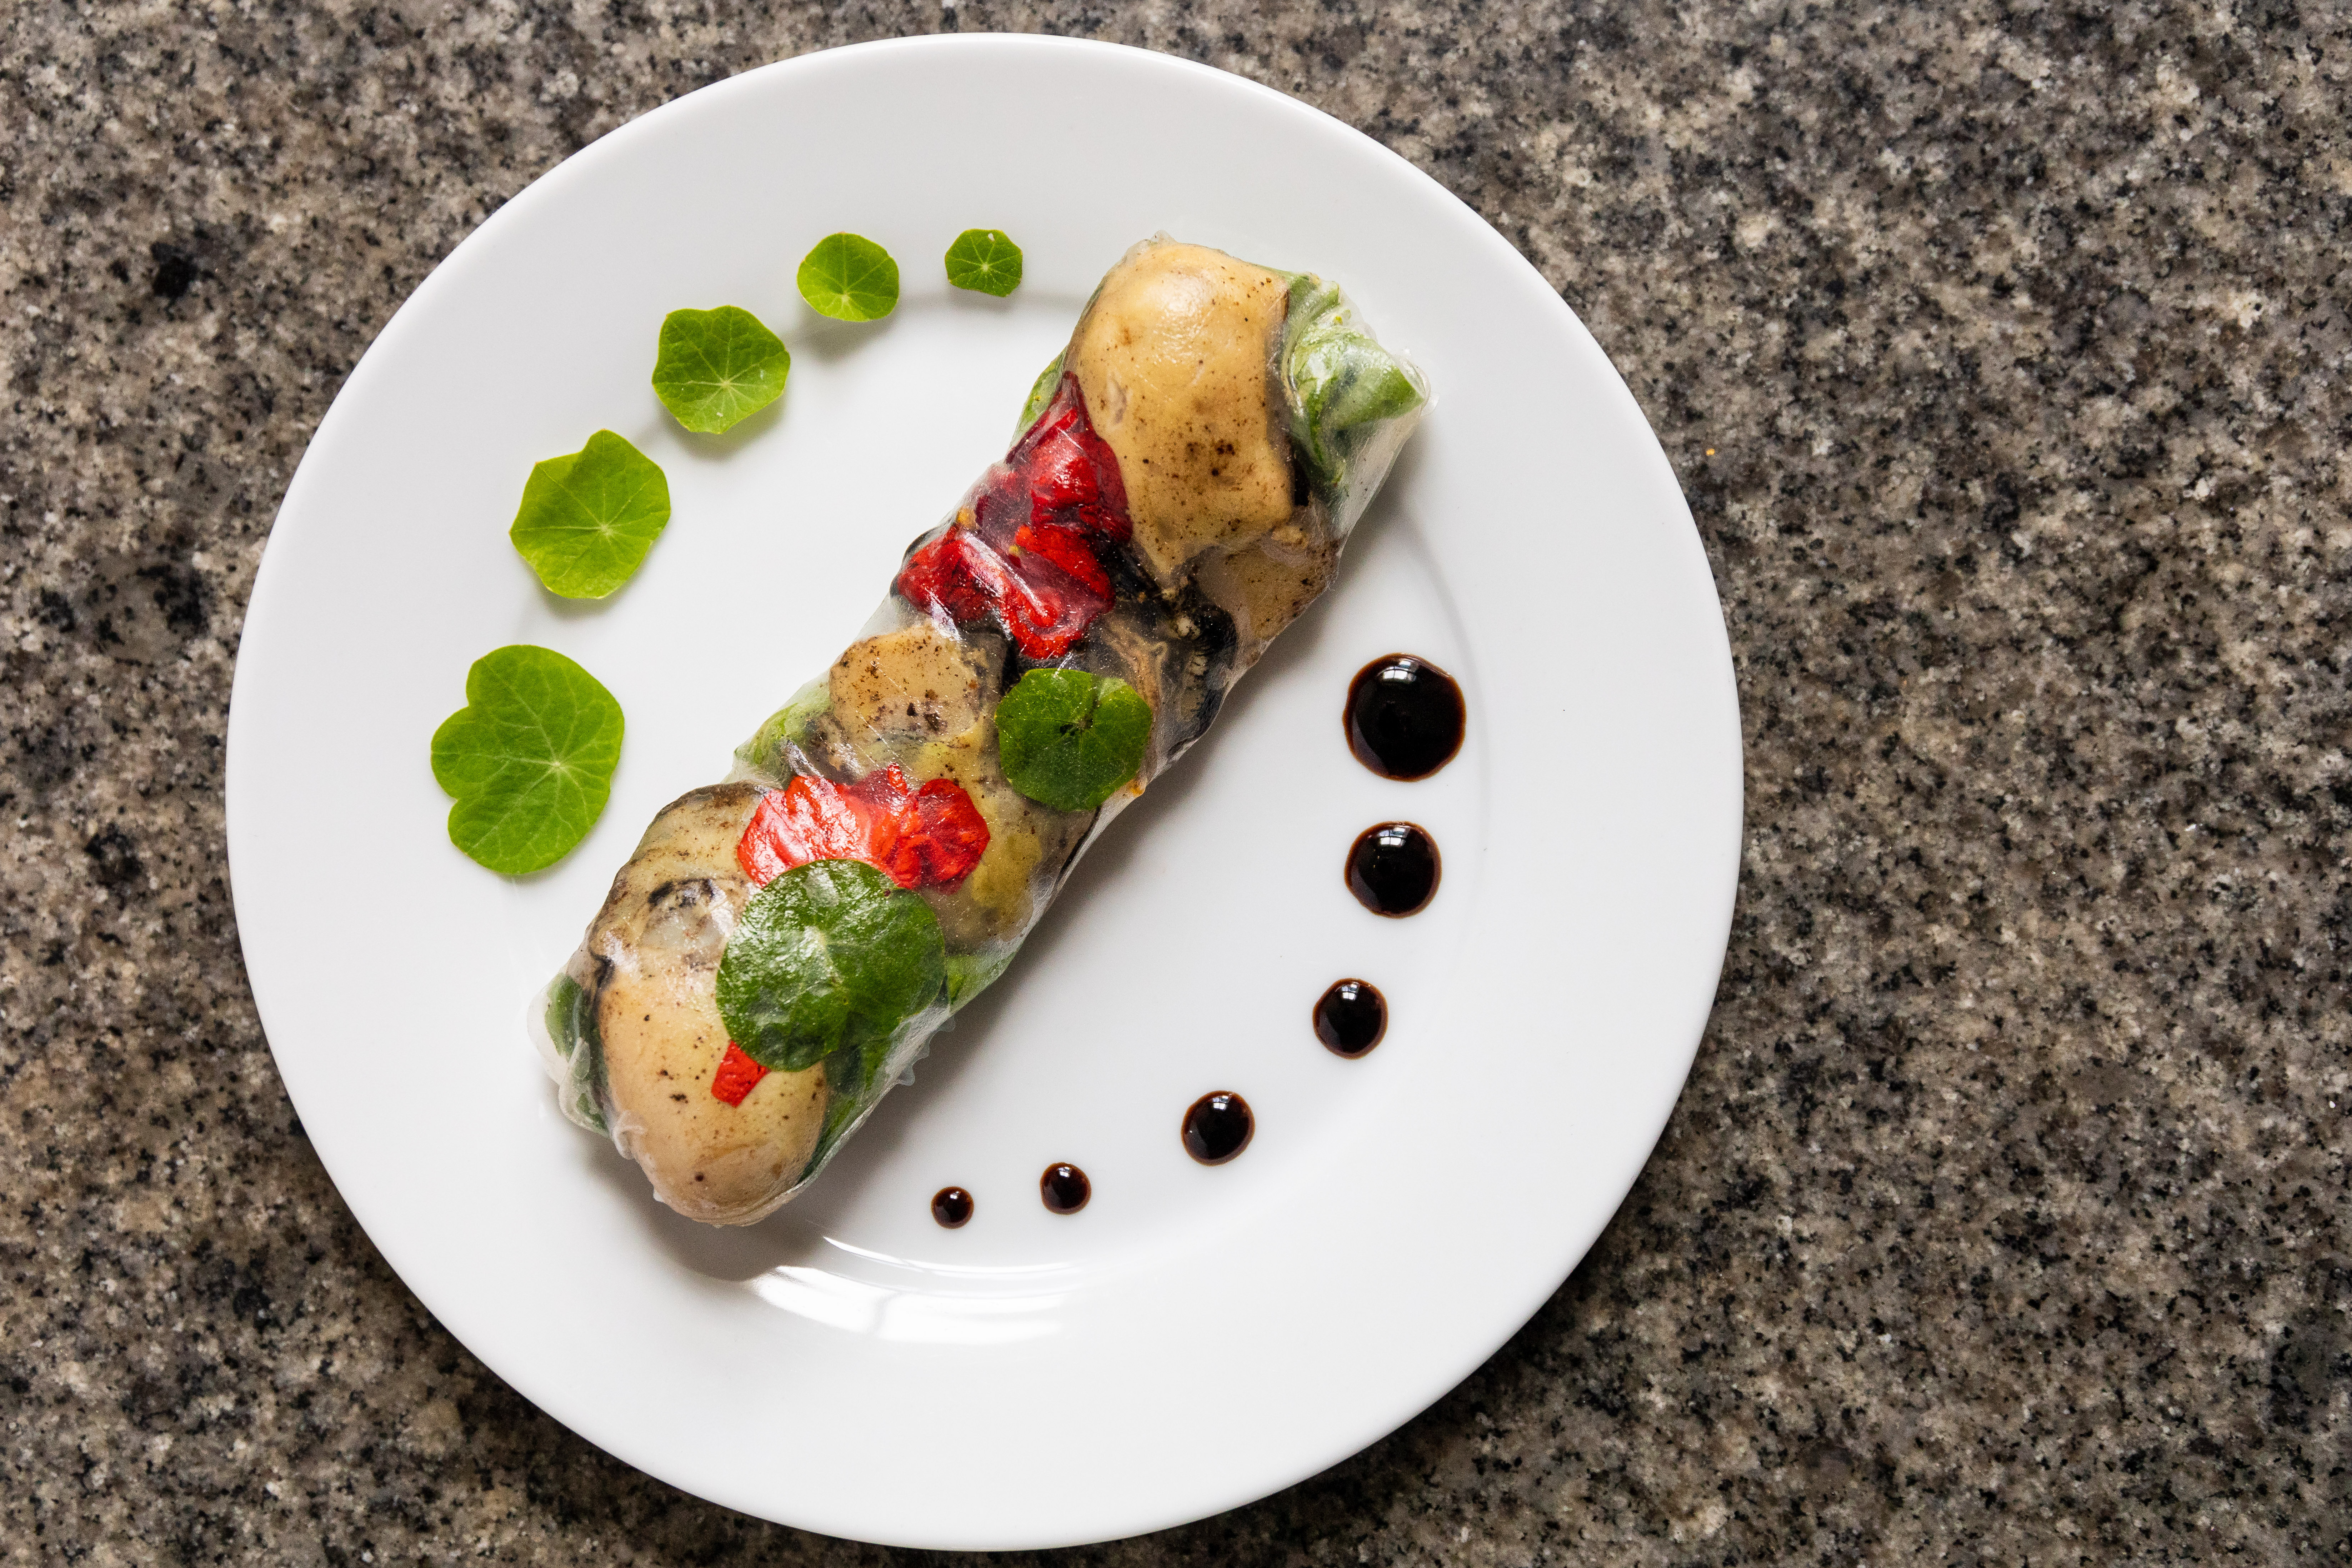 Poached Oyster Summer Roll by Katy a